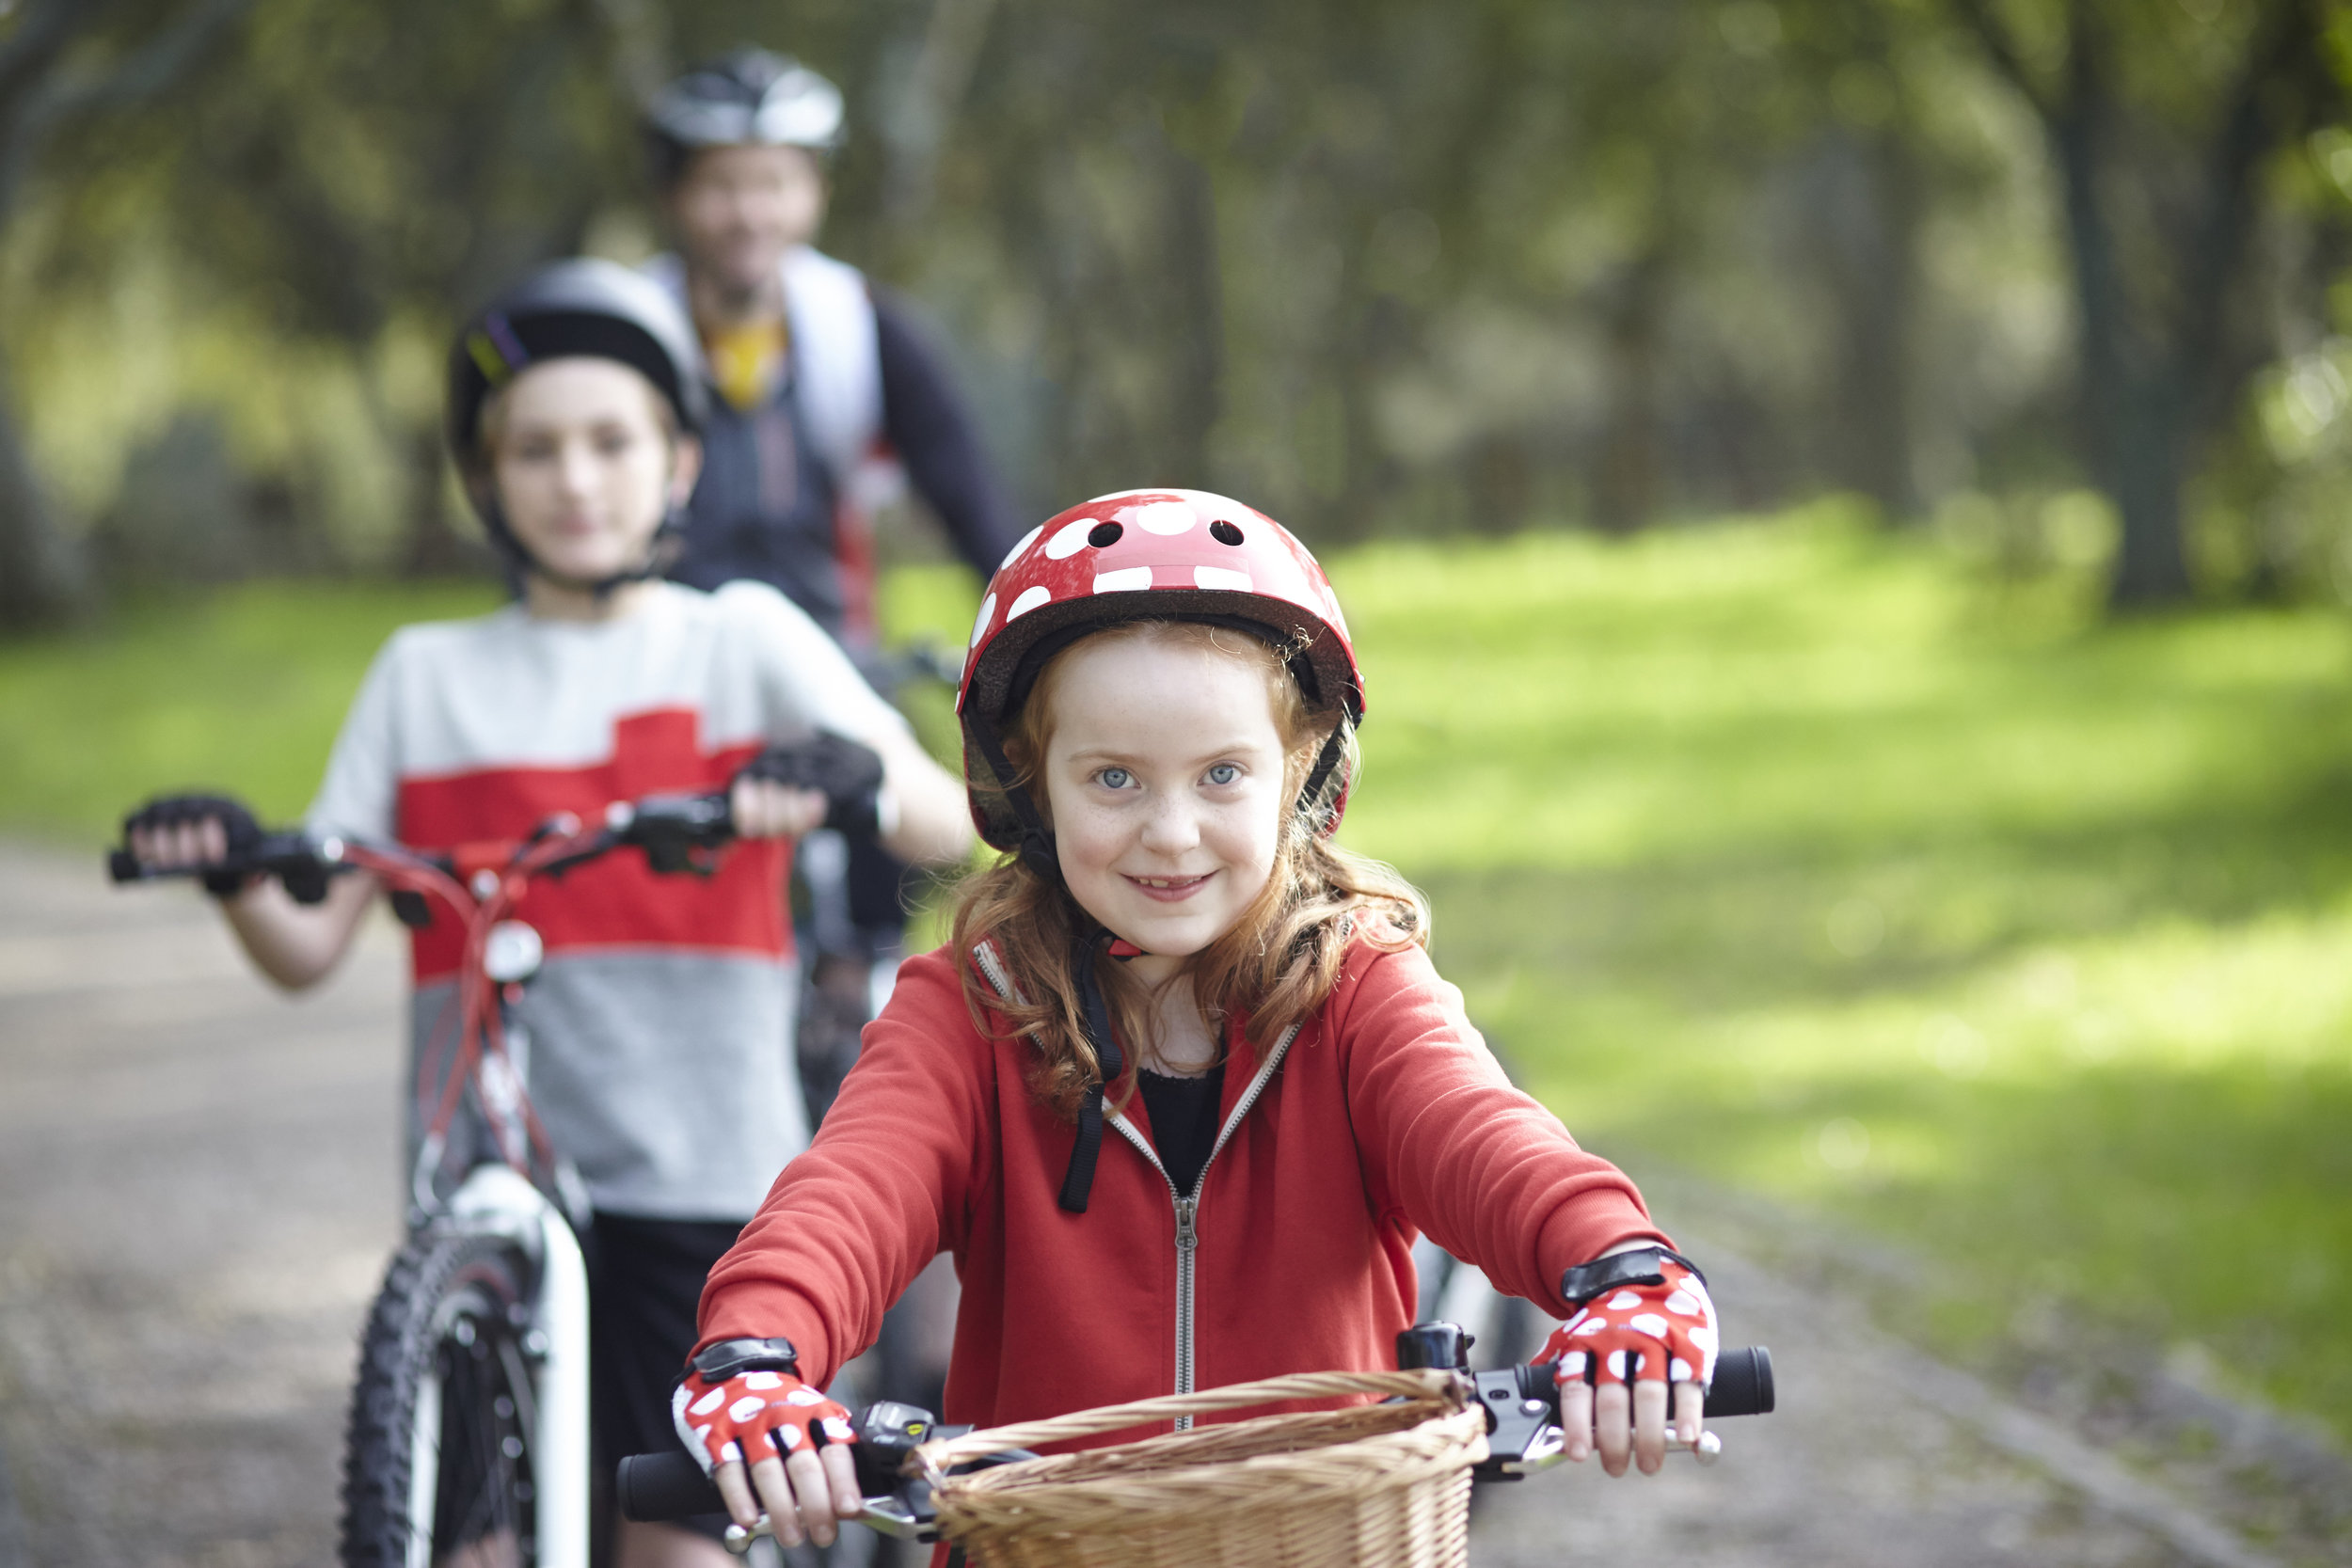 MickeyandFriends_Cycling_PublicityStills_33_master_Retouched.jpg